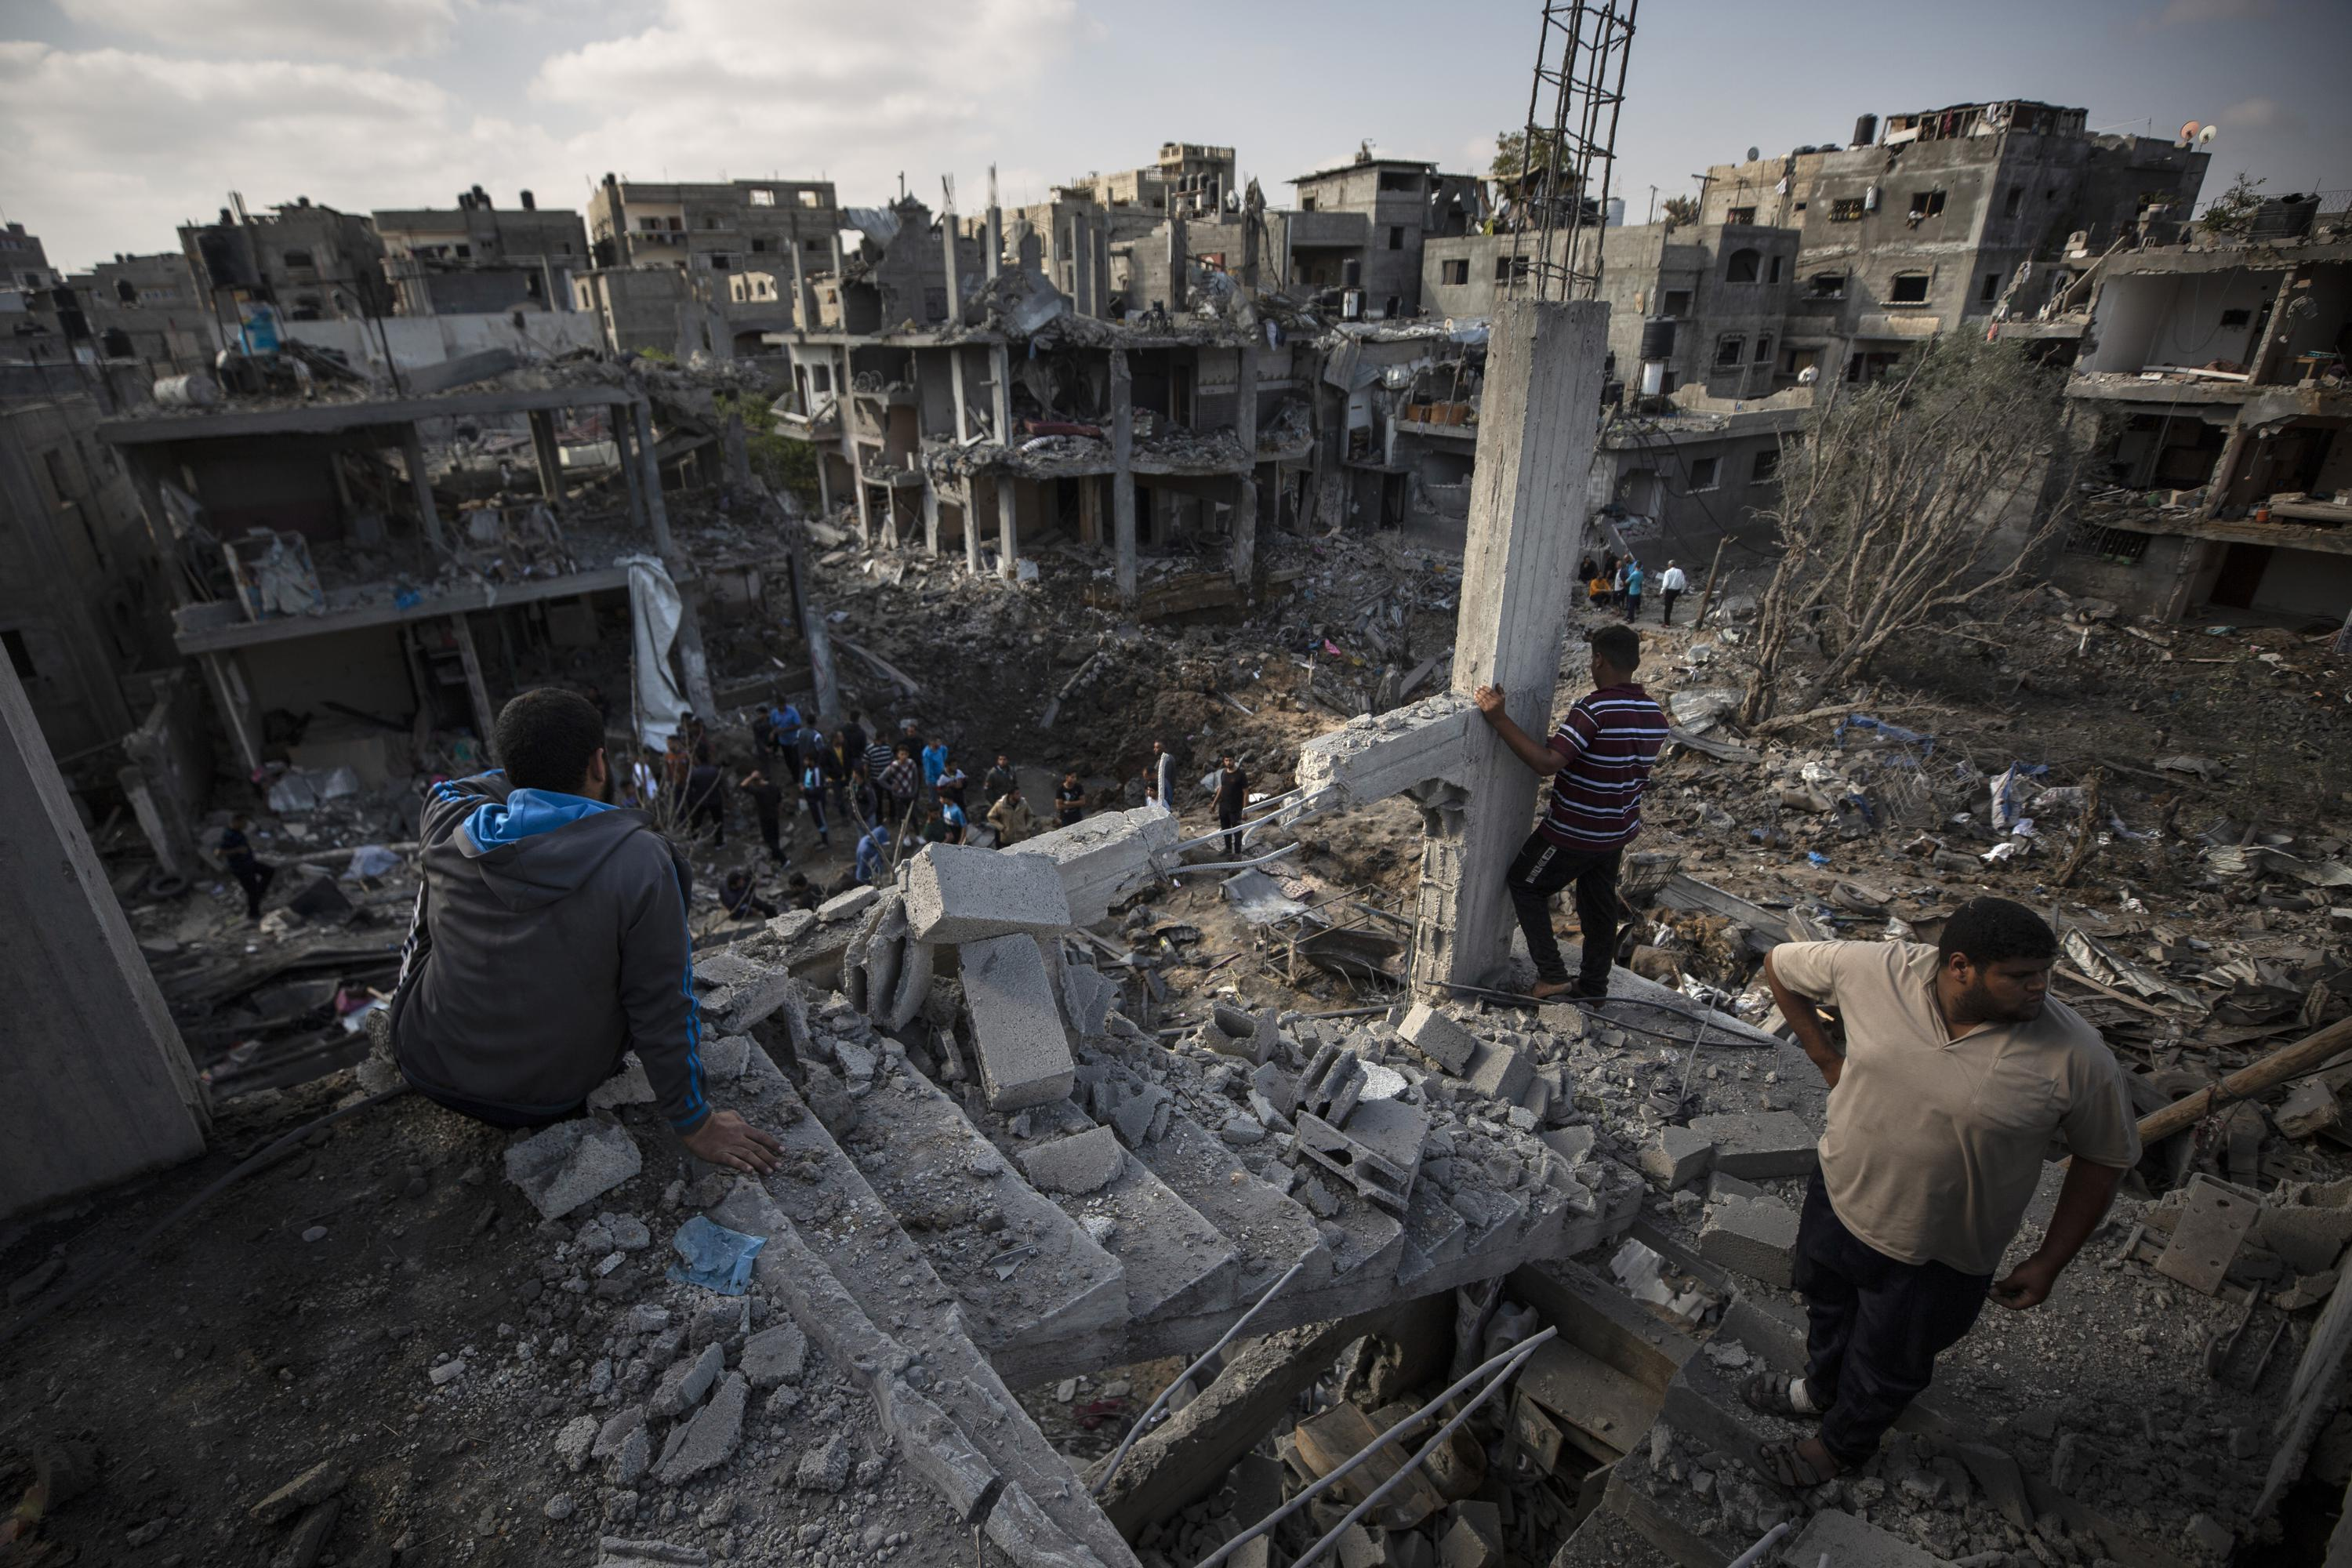 EXPLAINER: Why is Gaza almost always mired in conflict?